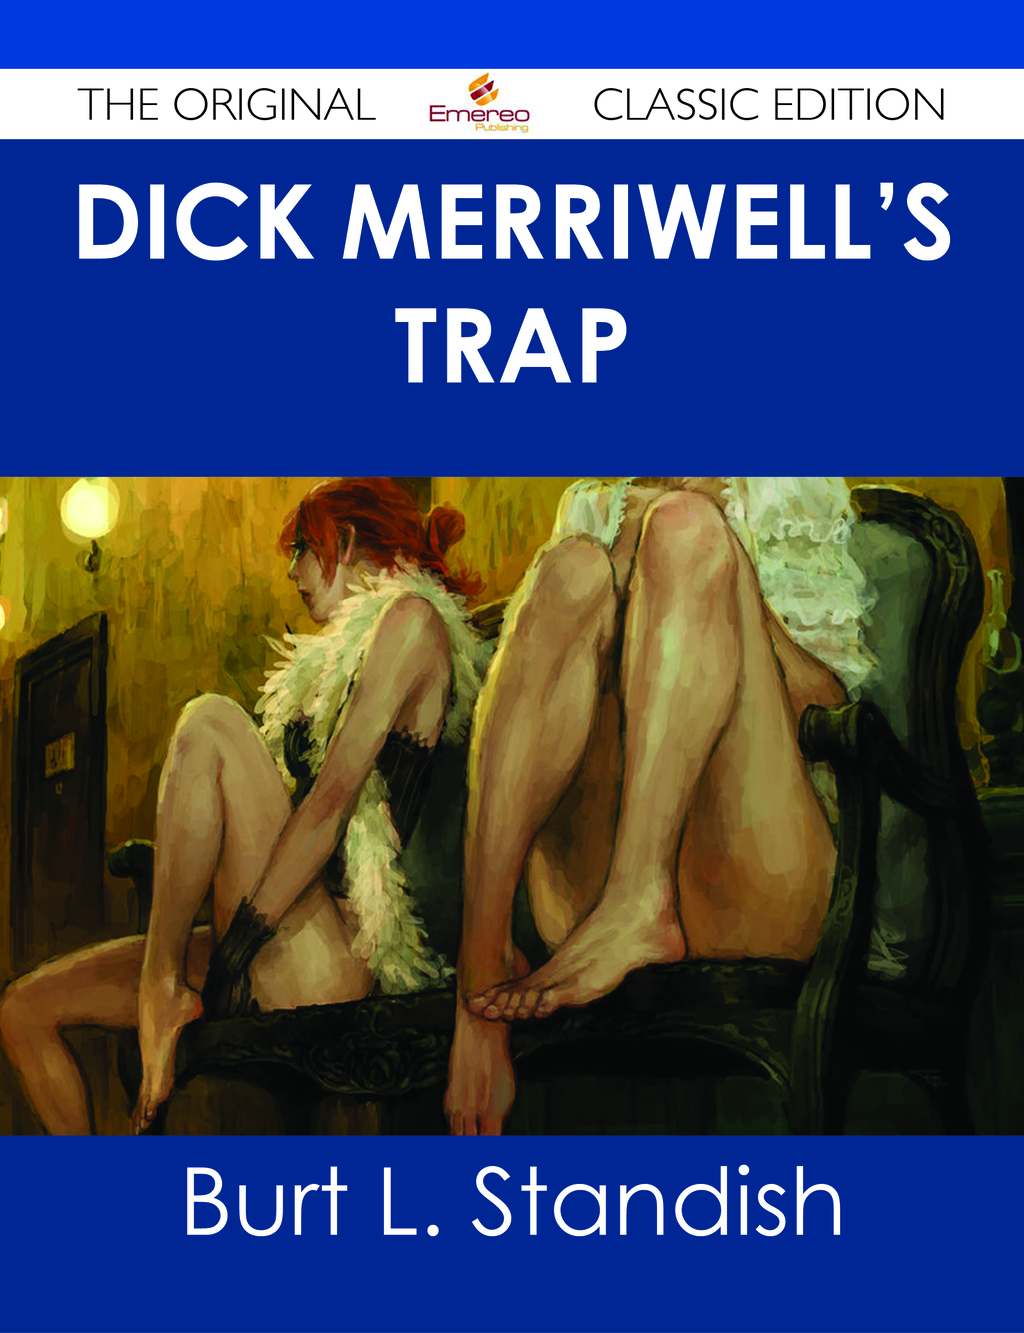 Dick Merriwell's Trap - The Original Classic Edition